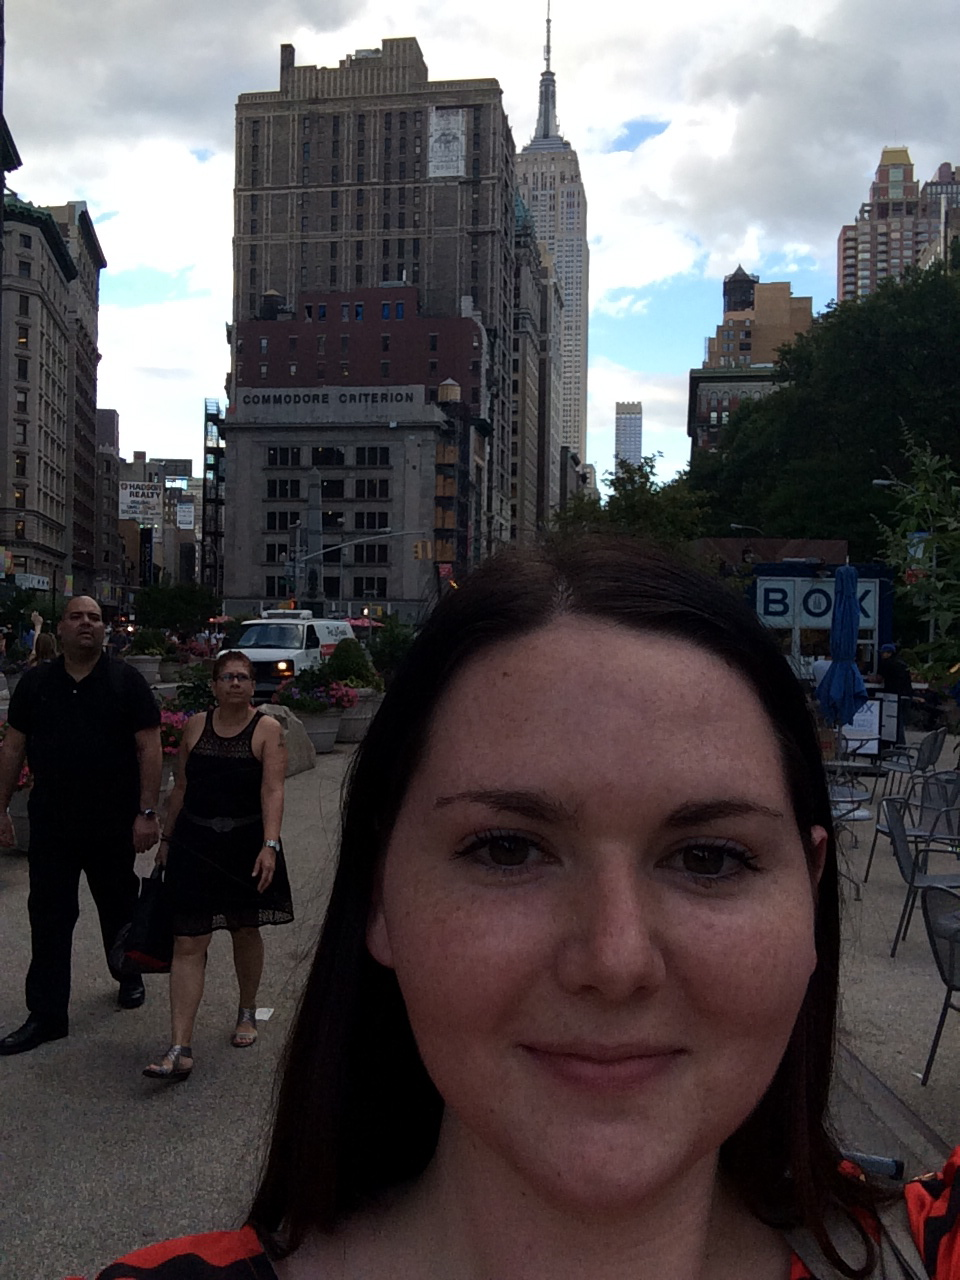 Last day in NYC June 28, 2014 90